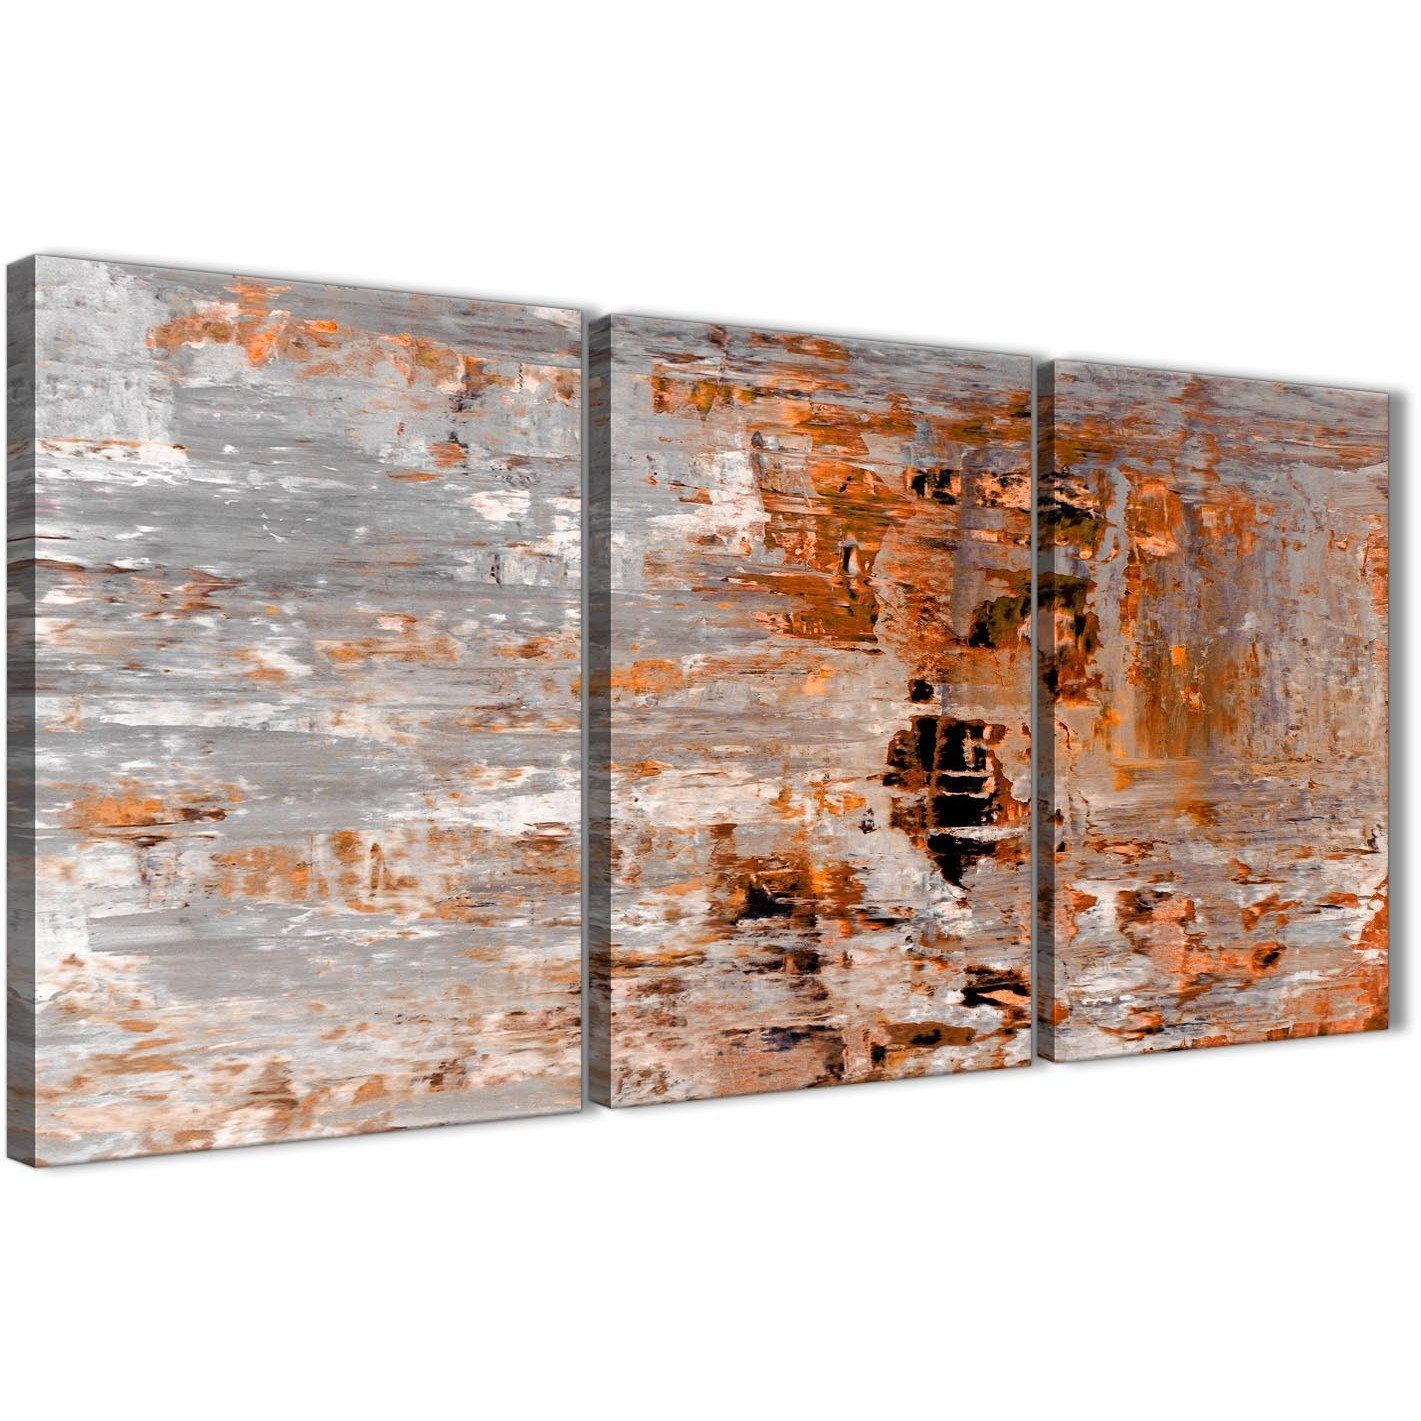 3 Panel Burnt Orange Grey Painting Dining Room Canvas Wall Art Decor Intended For Recent Orange Wall Art (View 2 of 20)